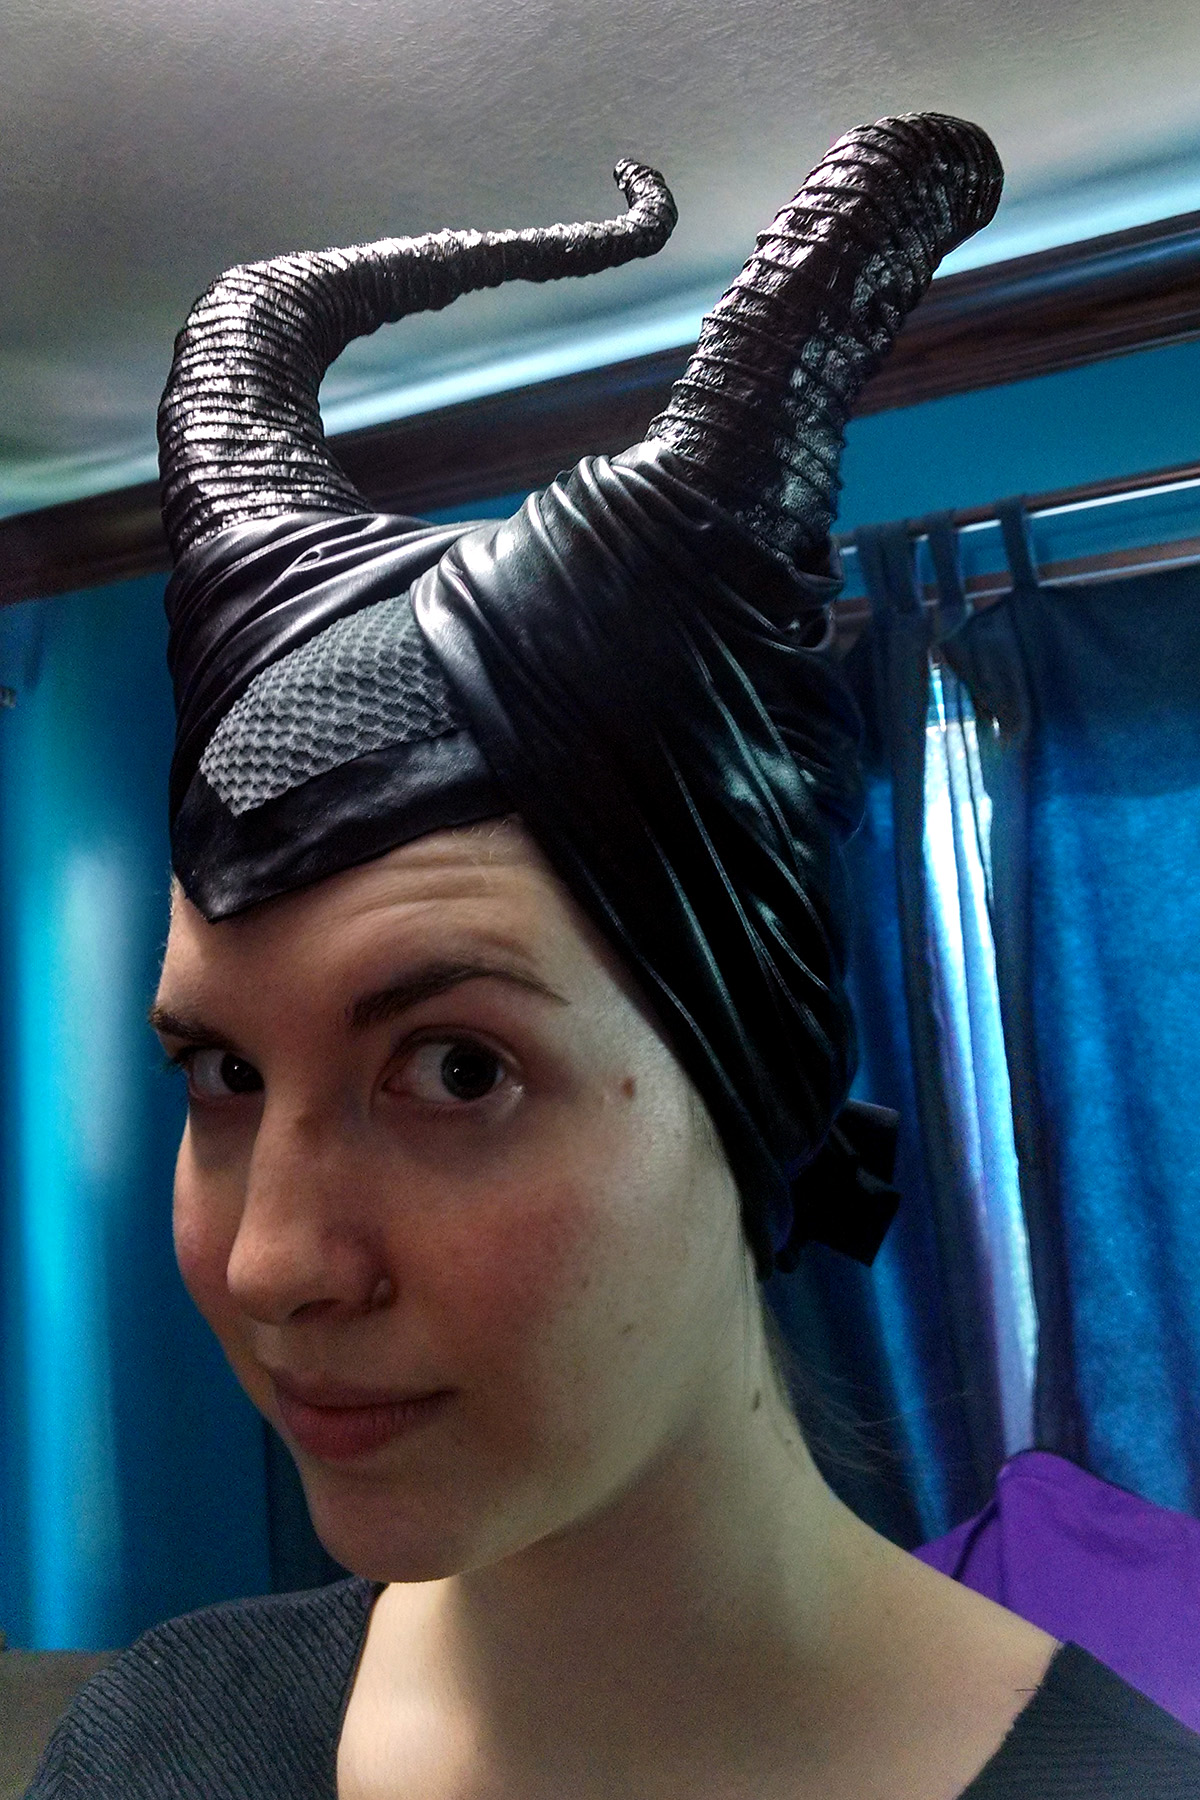 A cosplayer wearing the Maleficent headpiece and horns.